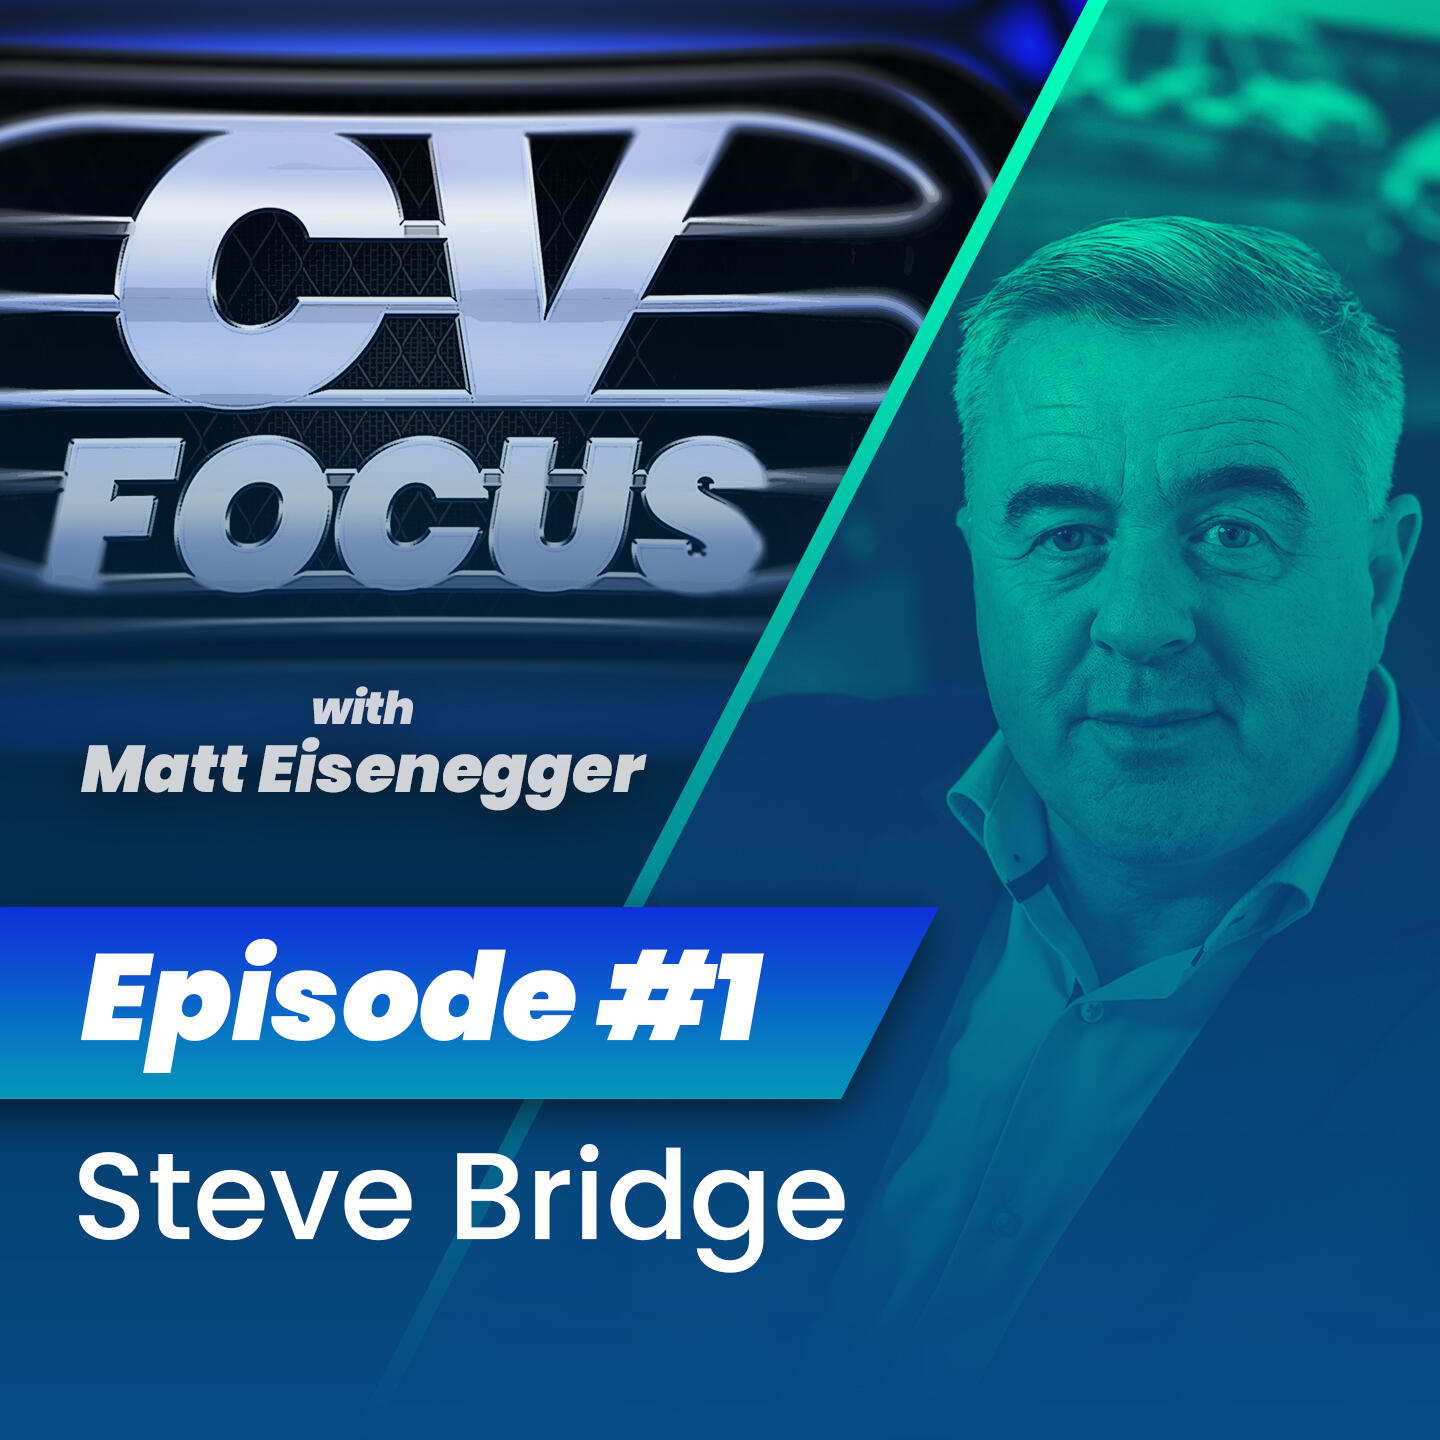 1: CV Focus episode 1 - Steve Bridge